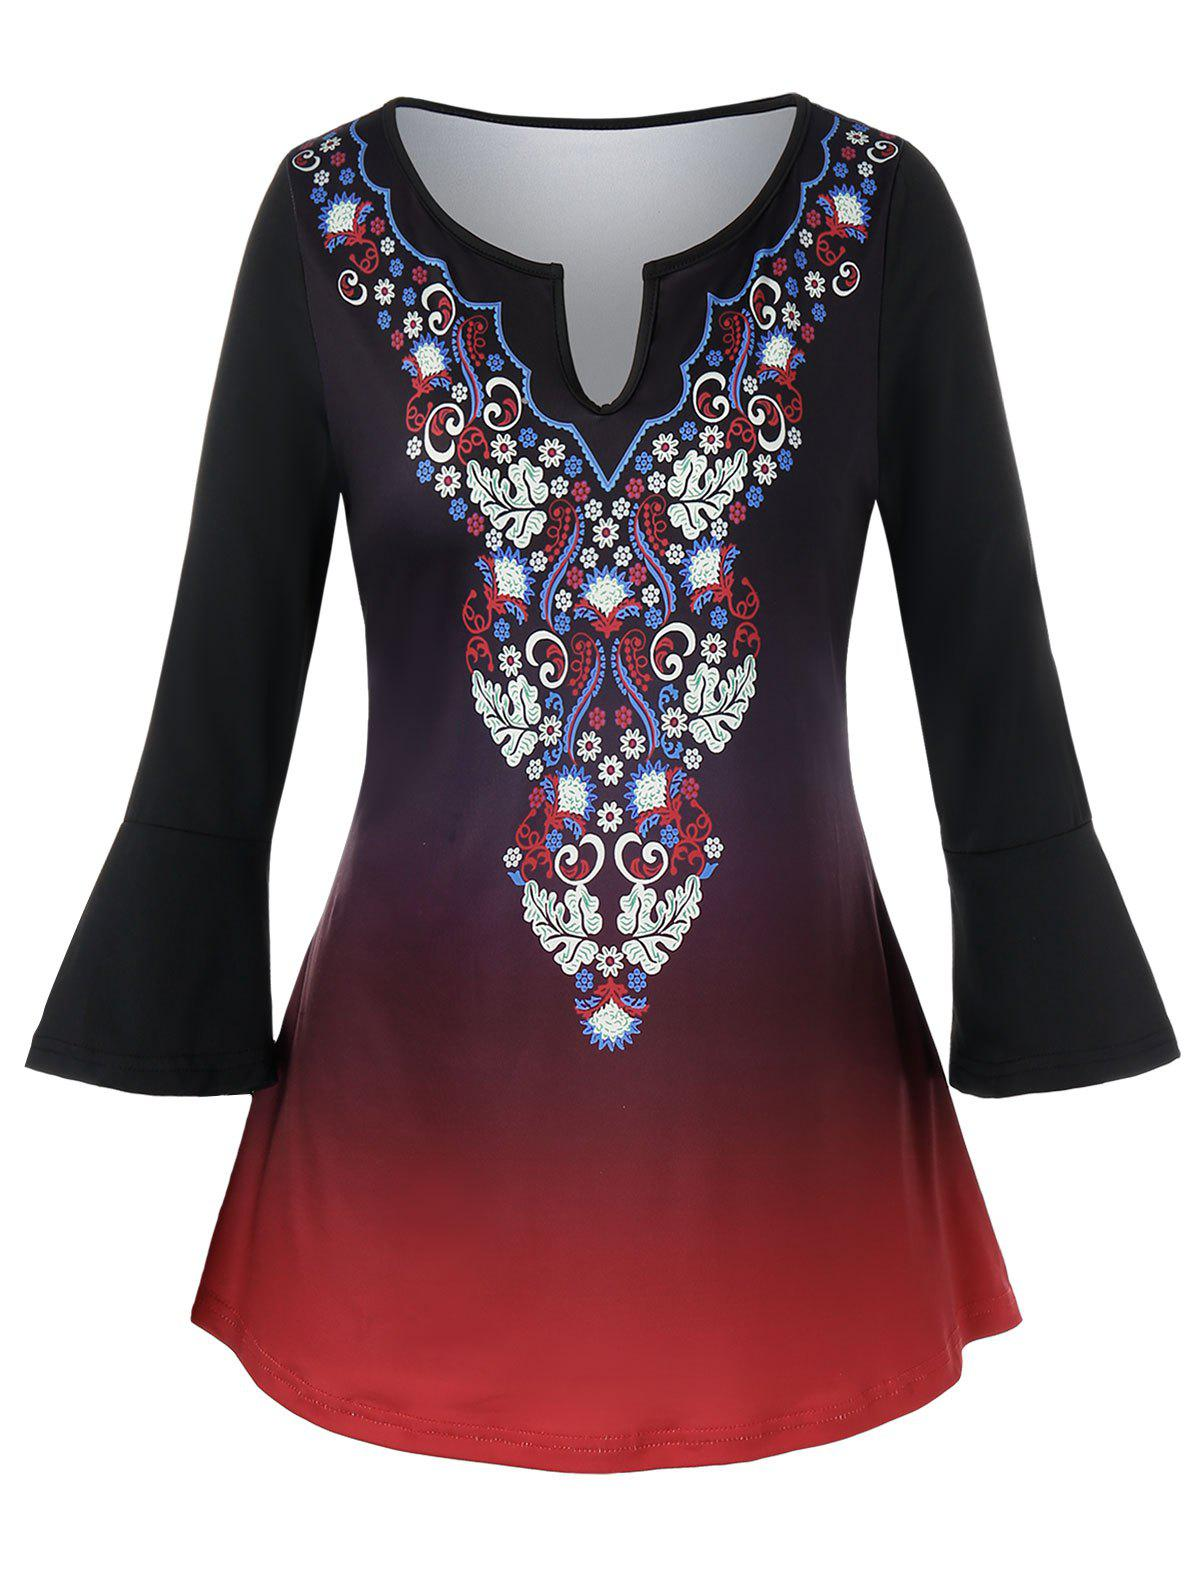 Plus Size Ethnic Floral Printed Ombre Top - BLACK L